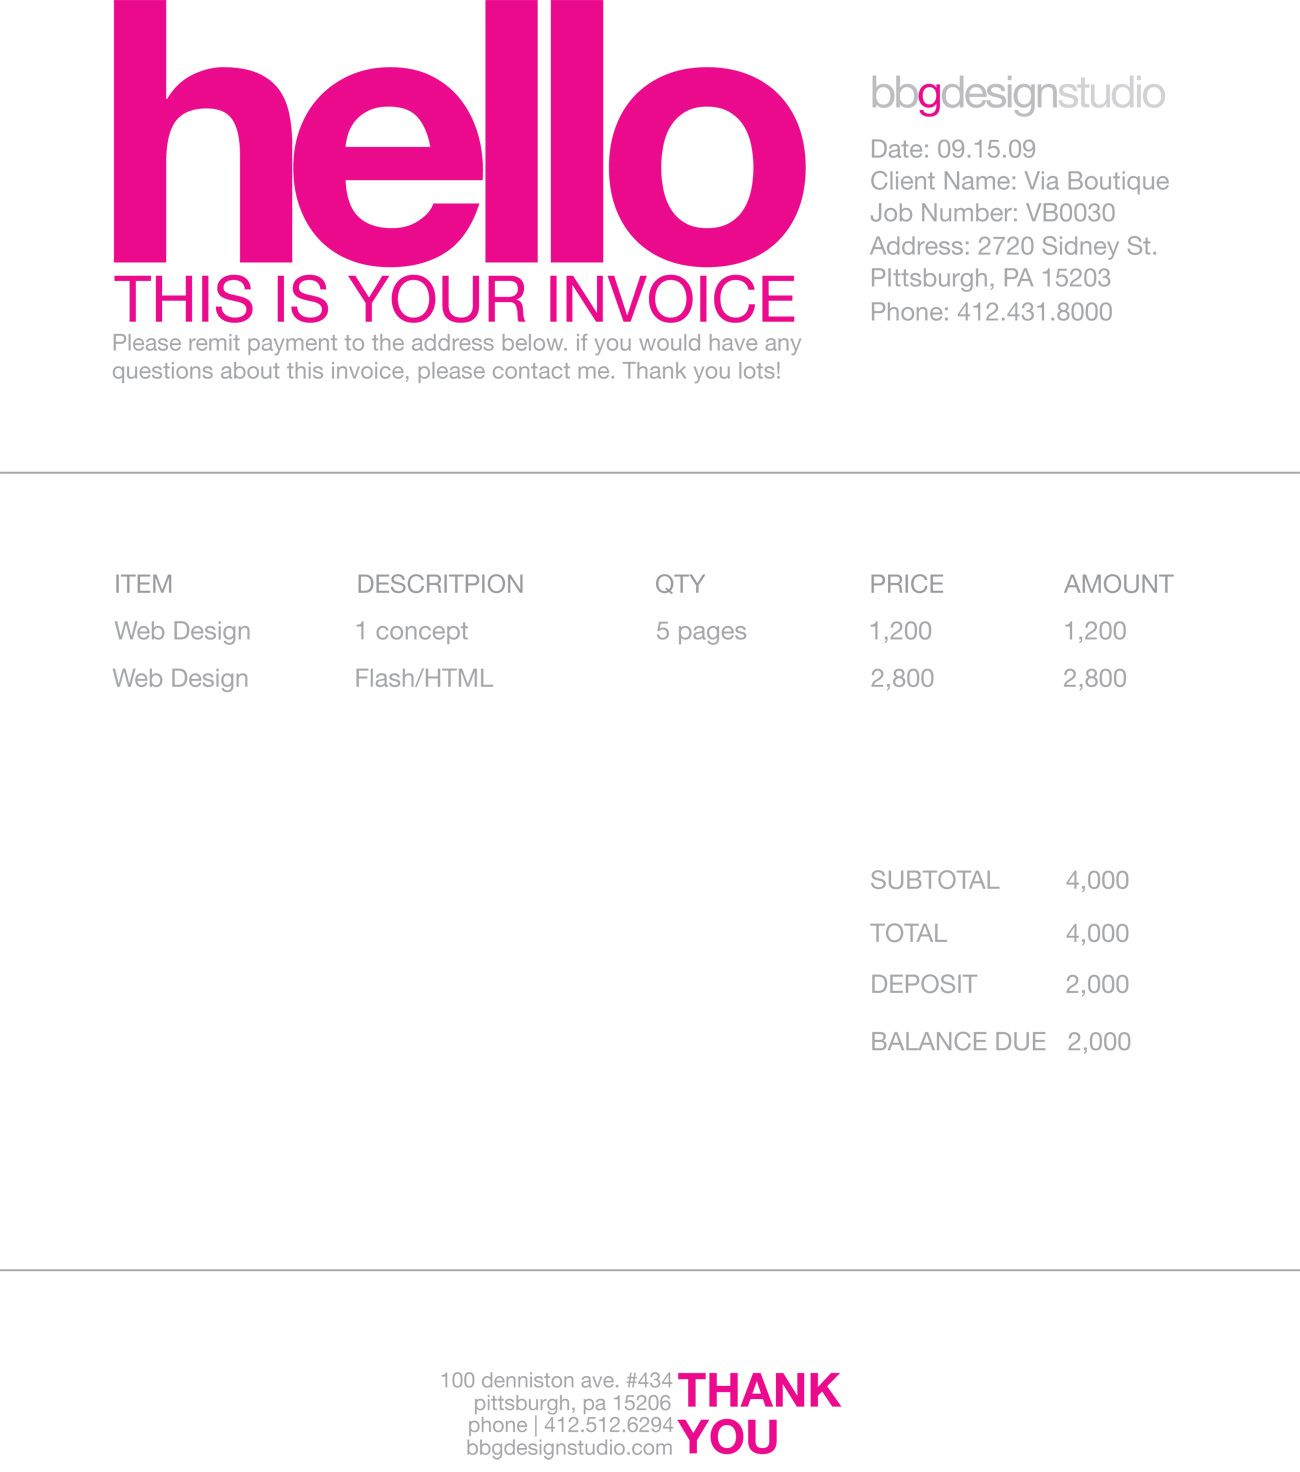 Pxworkoutfreeus  Fascinating  Images About Invoice Design On Pinterest With Handsome Sage Invoicing Besides Export Invoice Financing Furthermore Nz Tax Invoice Template With Divine Good Invoice Software Also Invoice Clerk Duties In Addition Band Invoice Template And Aldermore Invoice Finance As Well As Printable Invoice Template Free Additionally How To Create An Invoice Template In Word From Pinterestcom With Pxworkoutfreeus  Handsome  Images About Invoice Design On Pinterest With Divine Sage Invoicing Besides Export Invoice Financing Furthermore Nz Tax Invoice Template And Fascinating Good Invoice Software Also Invoice Clerk Duties In Addition Band Invoice Template From Pinterestcom